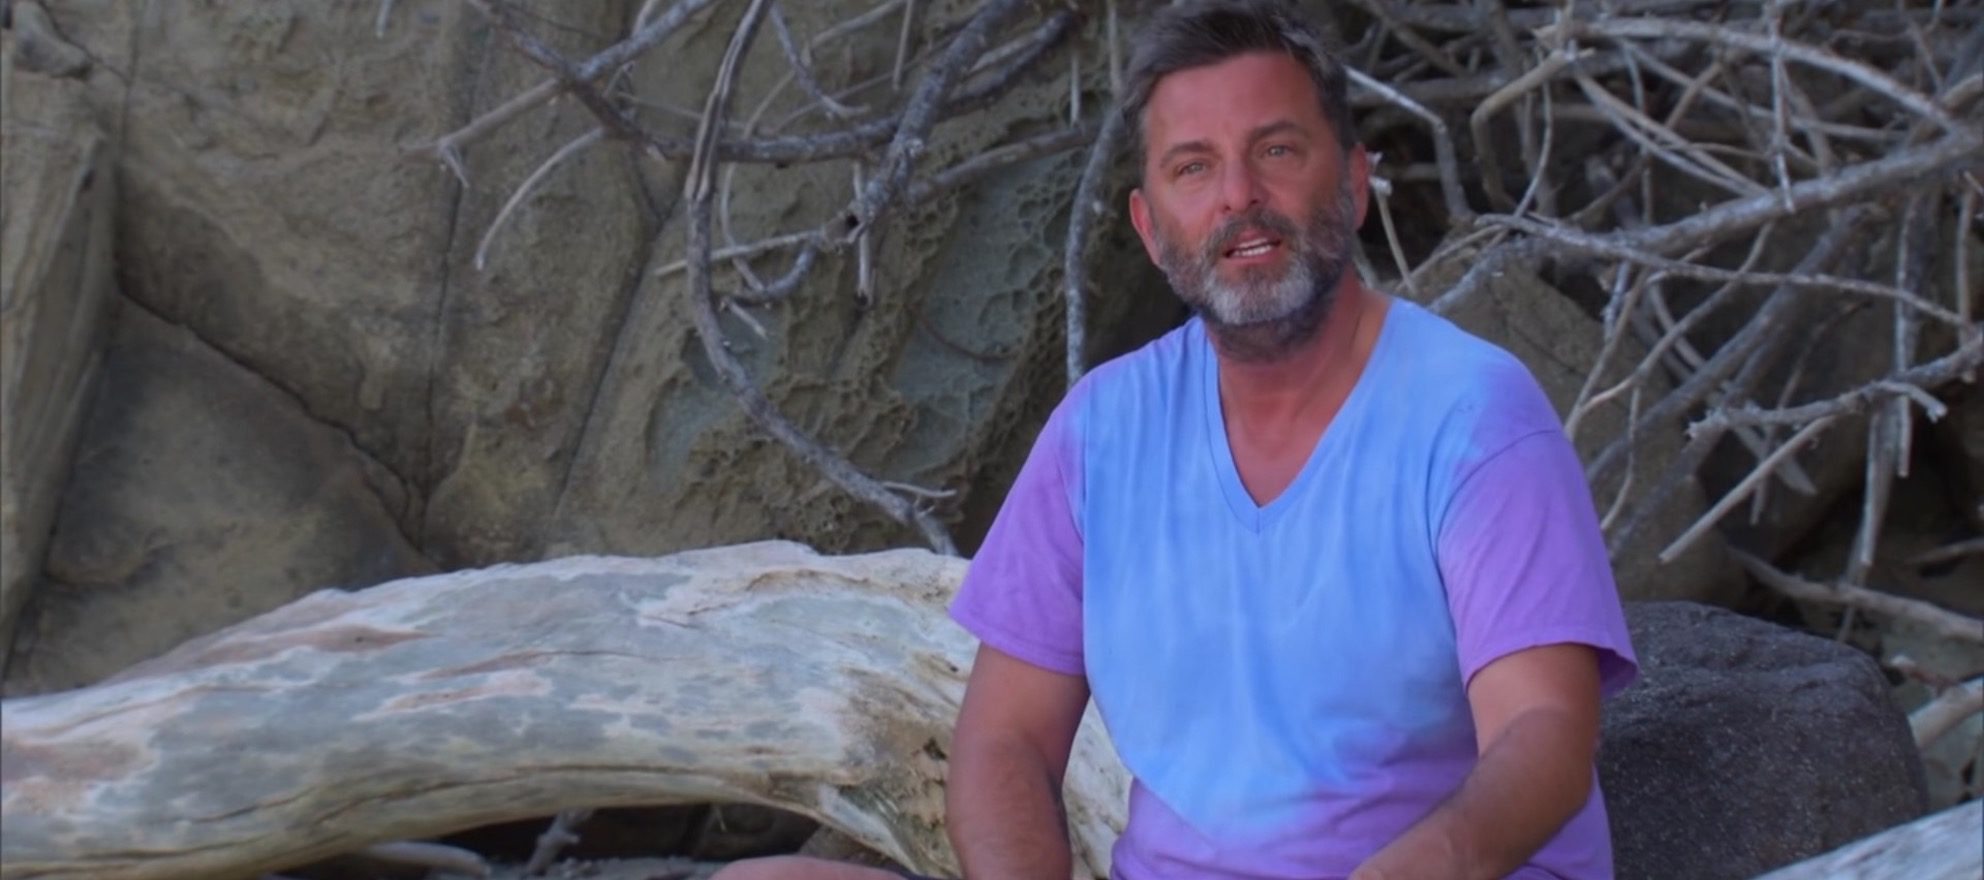 survivor real estate agent fired